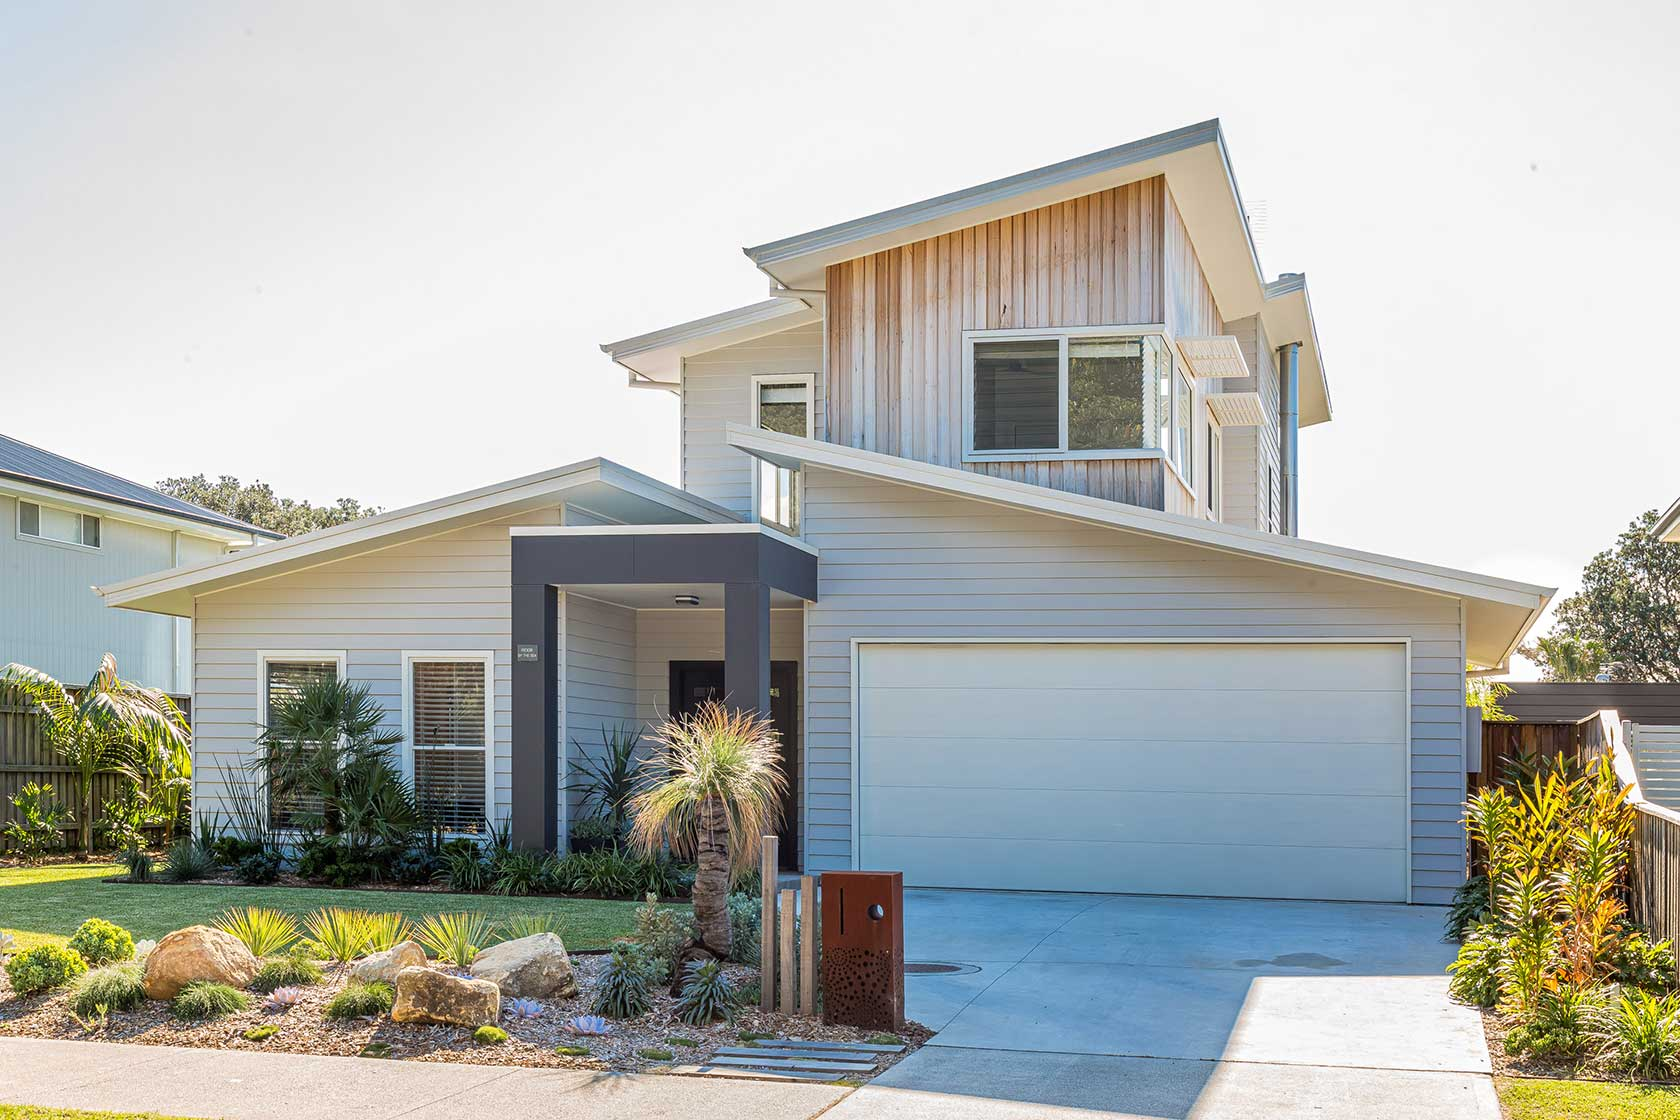 Modern two storey beach-style home with an open plan feel.